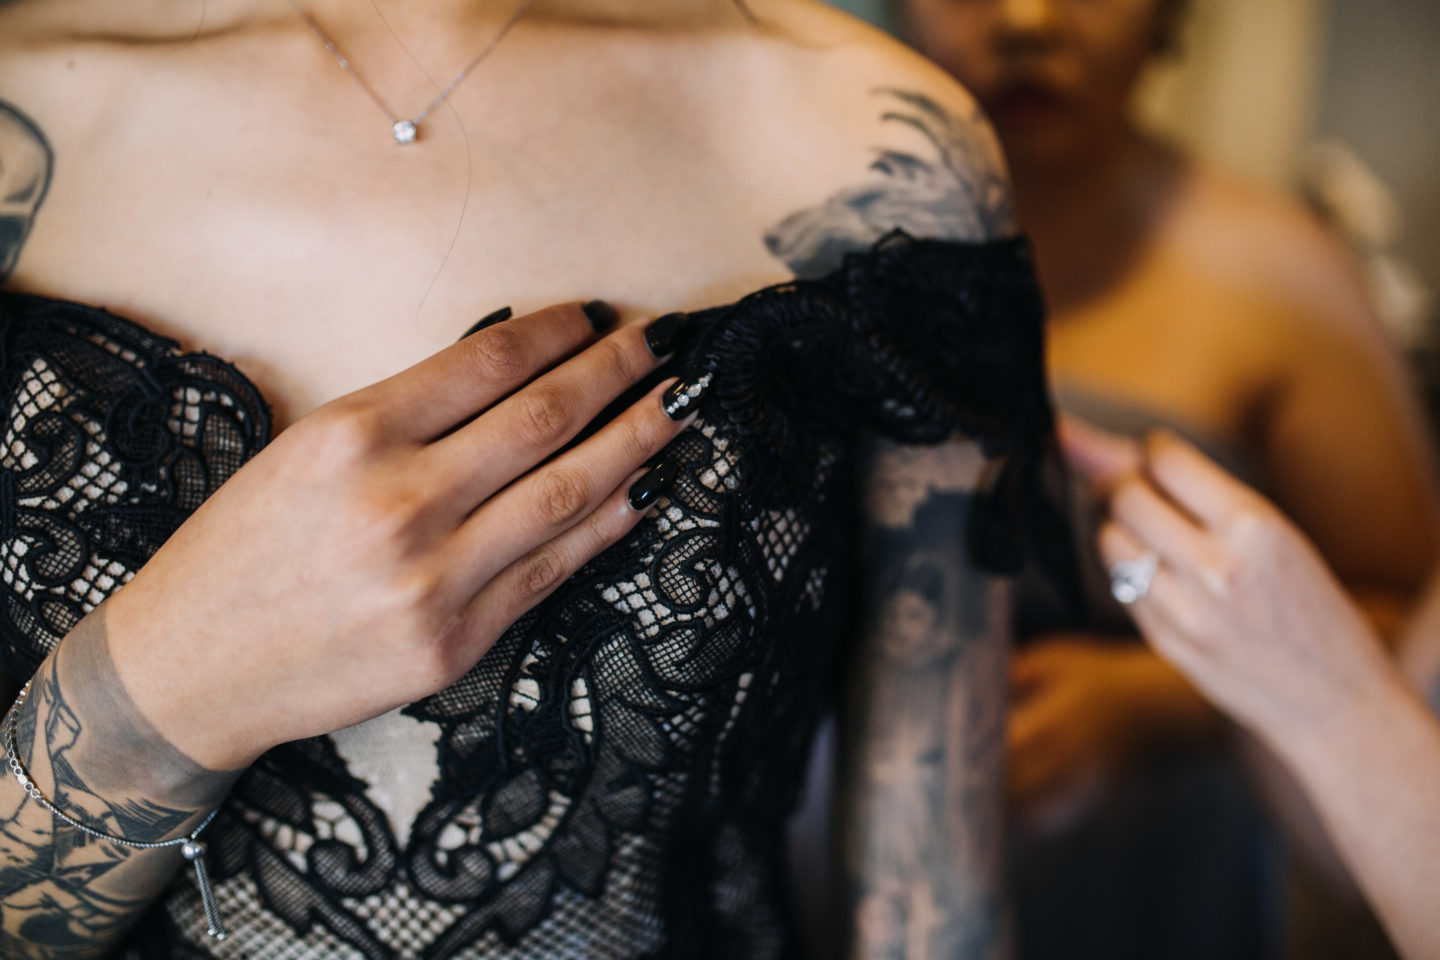 Romantic Goth Wedding With Black Wedding Dress at Villa Capri Sydney